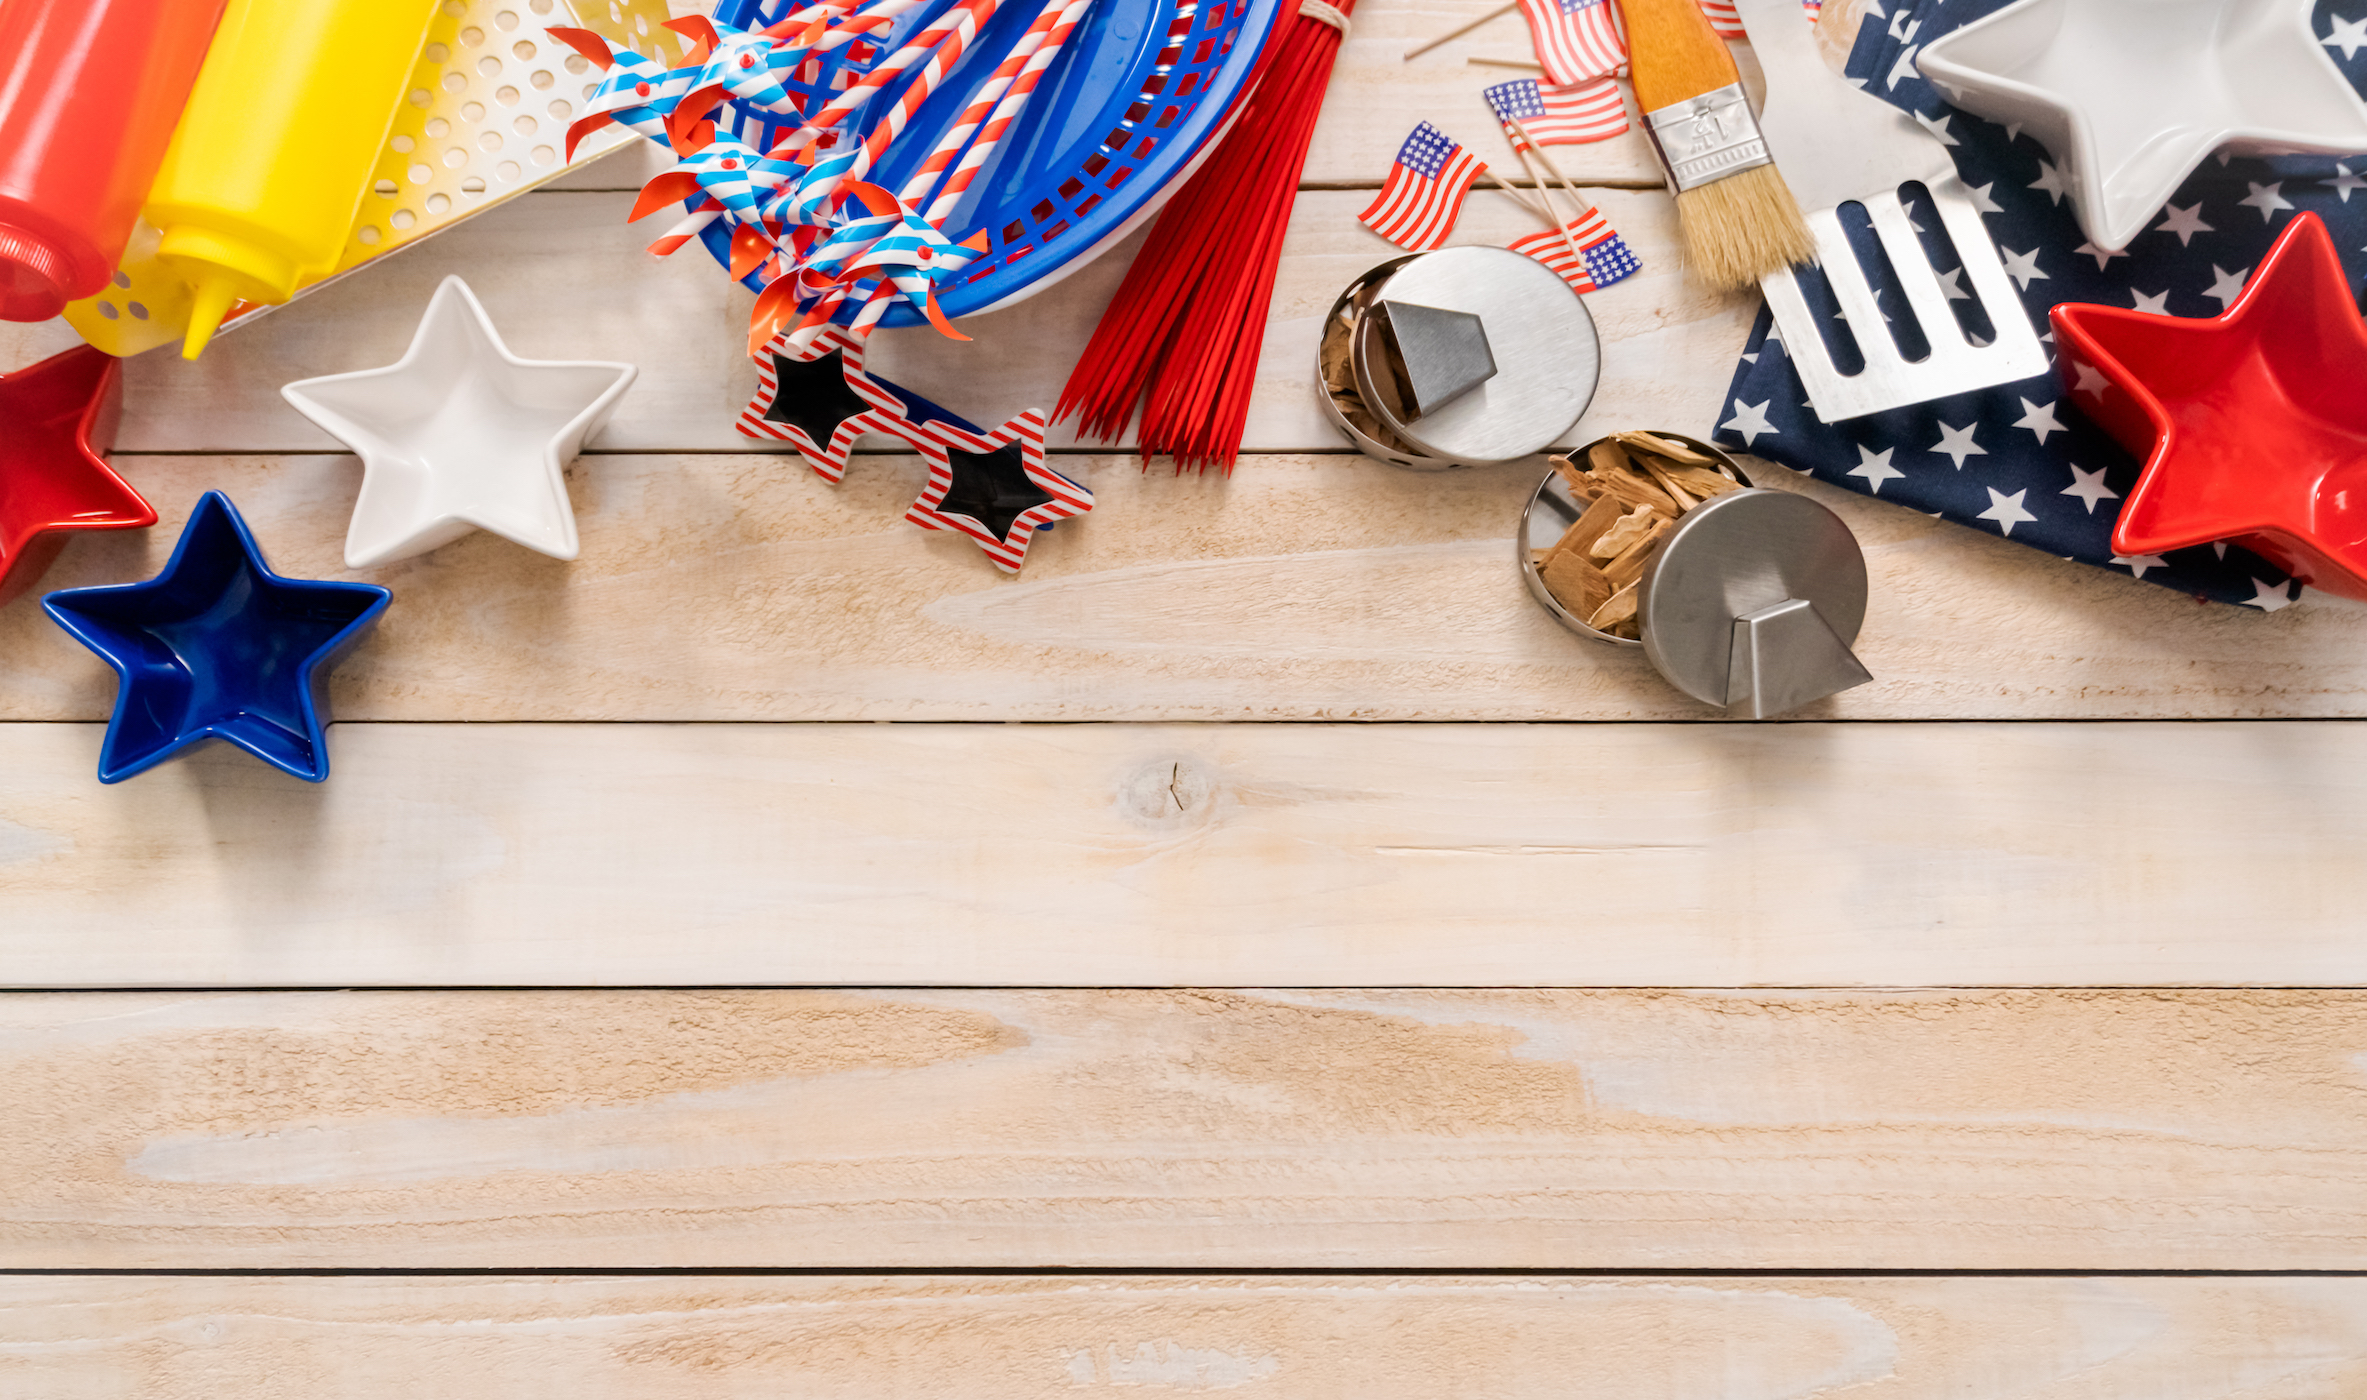 7 Ways to Prepare Your Home for the 4th